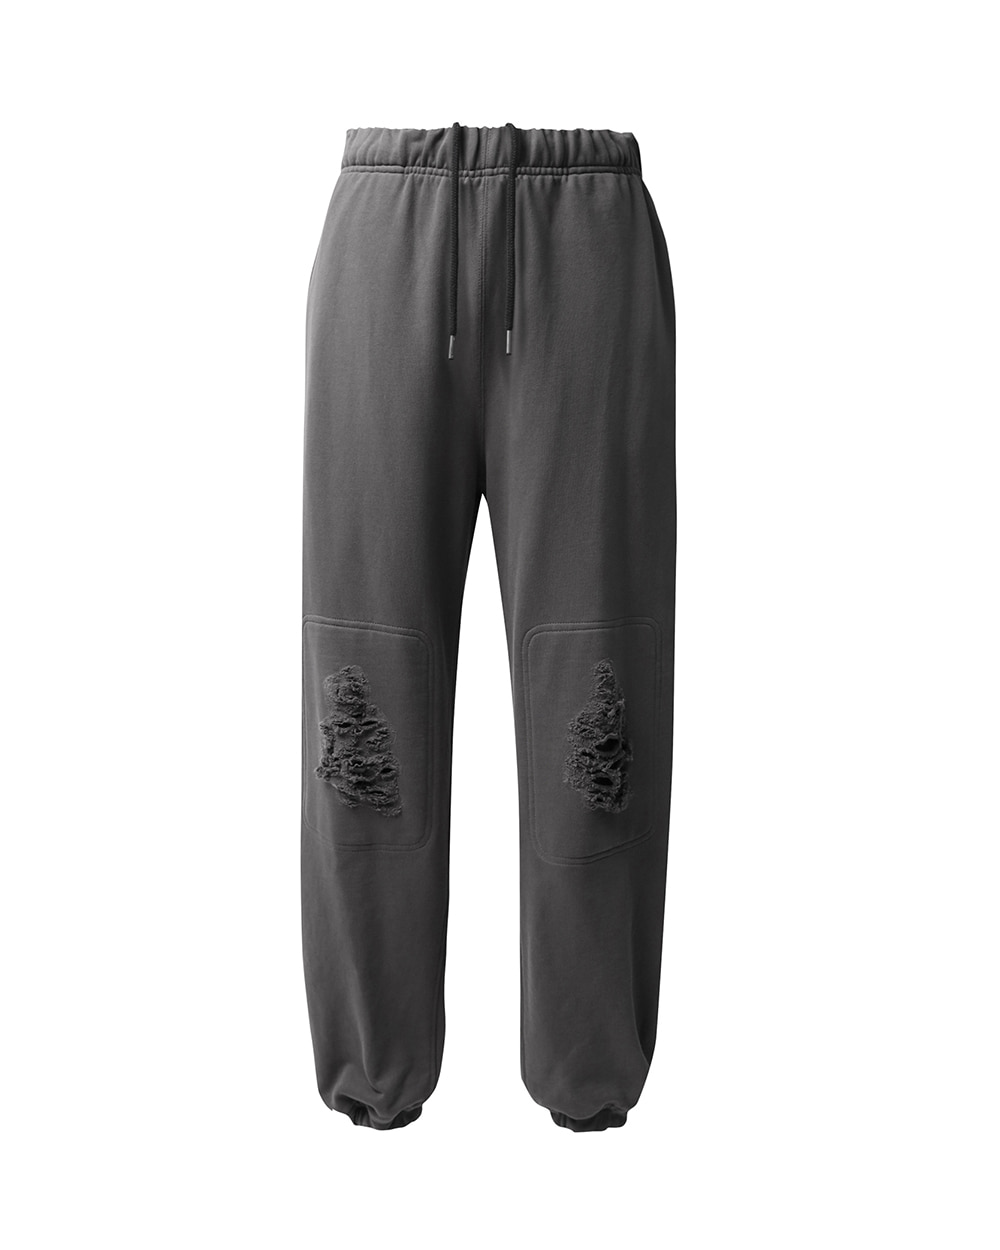 ATE STUDIOS AUTHENTIC SCAR SWEAT PANTS (Charcoal)